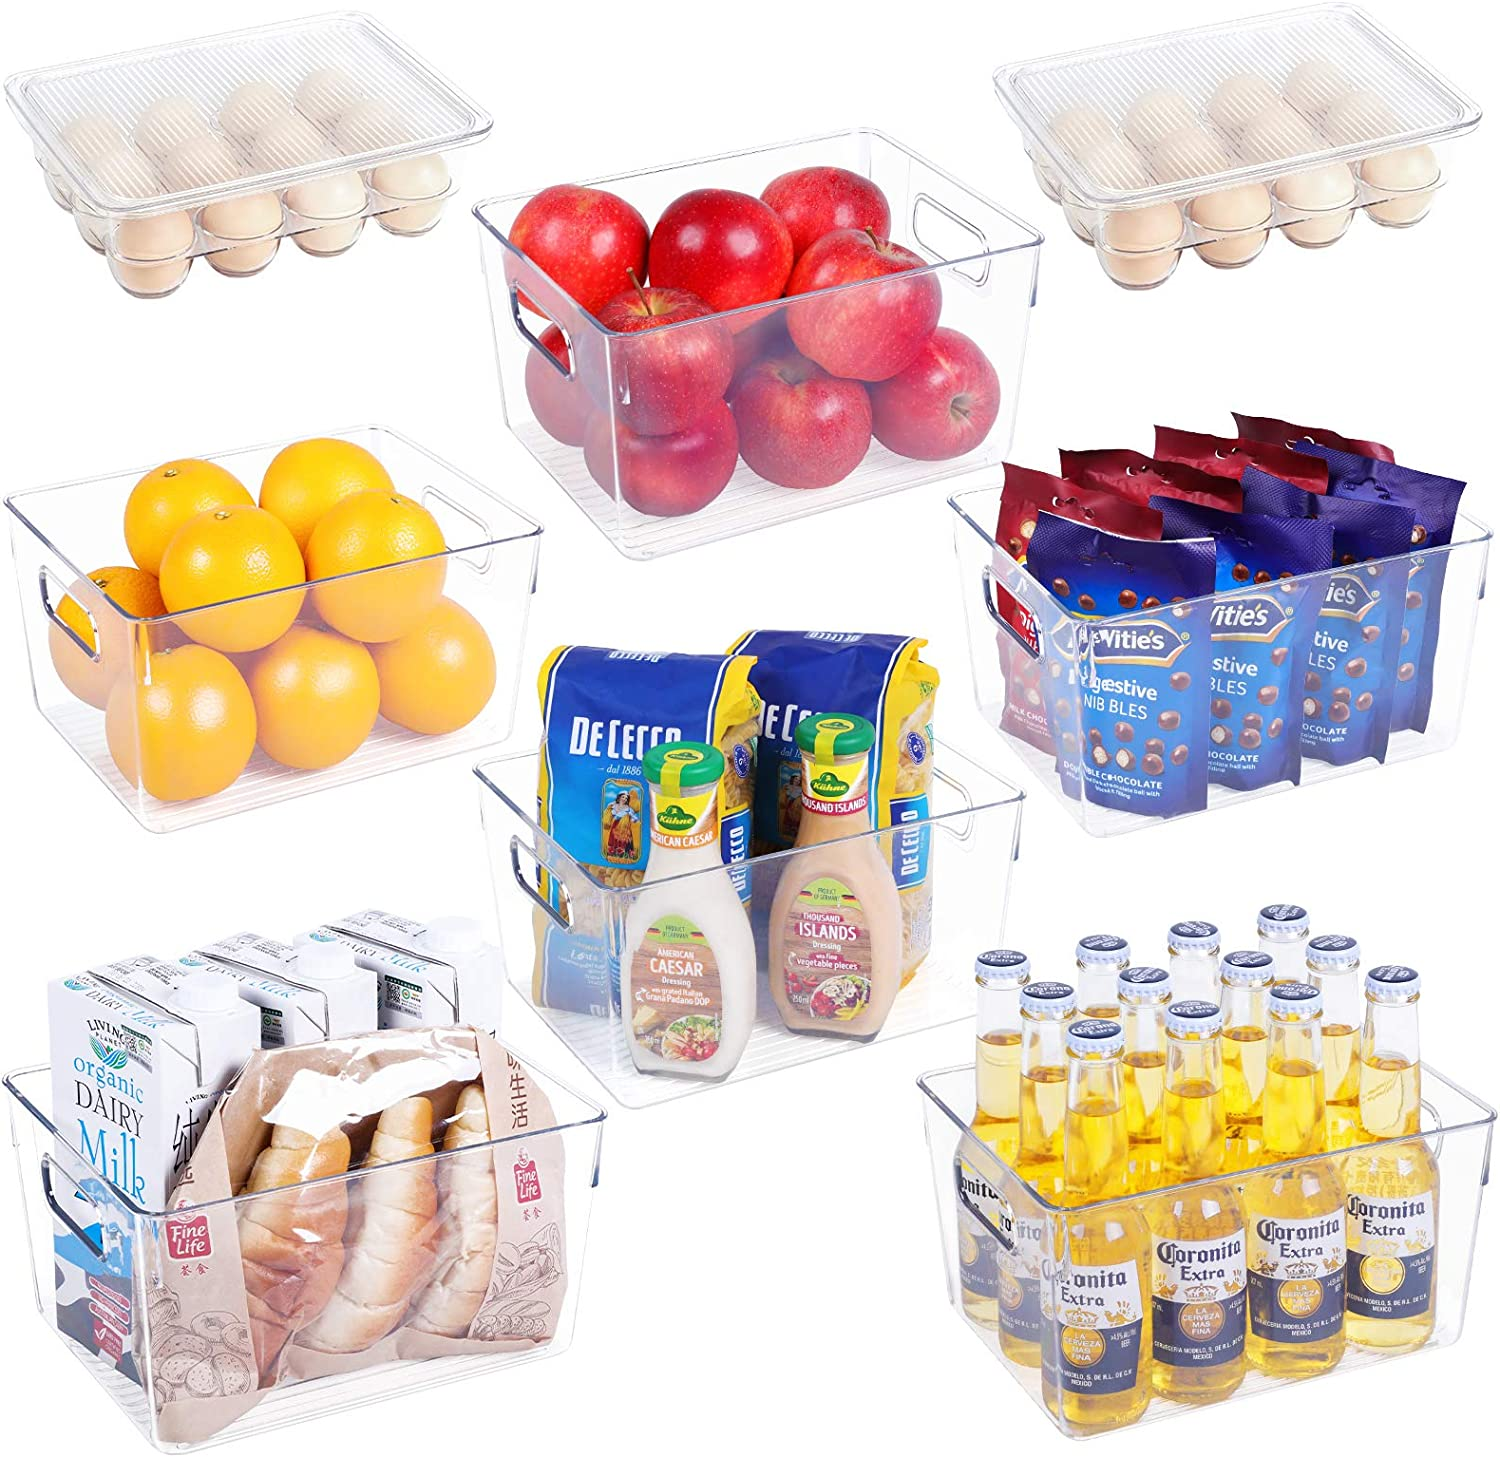 Clear Fridge Organizer Bins Set - 8 Piece Plastic Organizer Bins with Handle for Refrigerator, Stackable 12 Egg Tray Holder with Lid for Pantry, Condiment Organizer Bins for Kitchen